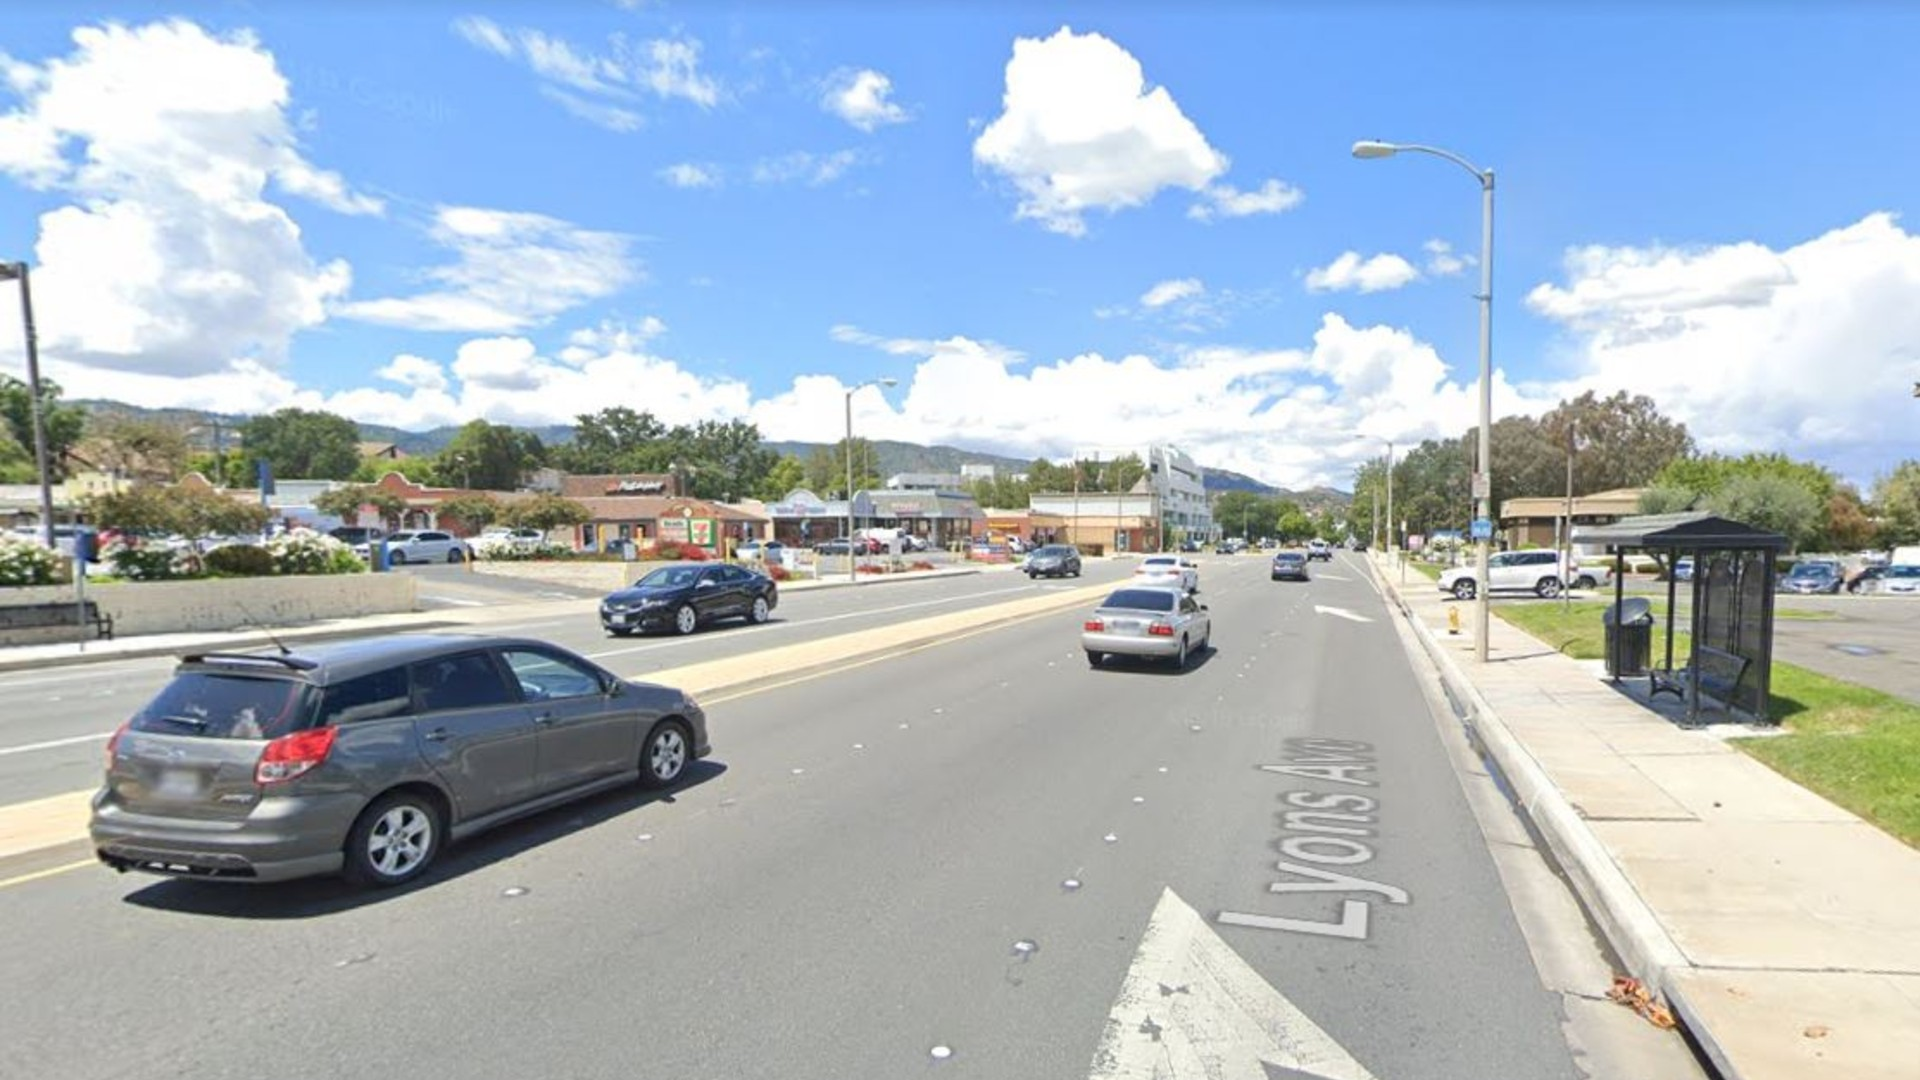 The 23400 block of Lyons Avenue in Santa Clarita, as viewed in a Google Street View image.